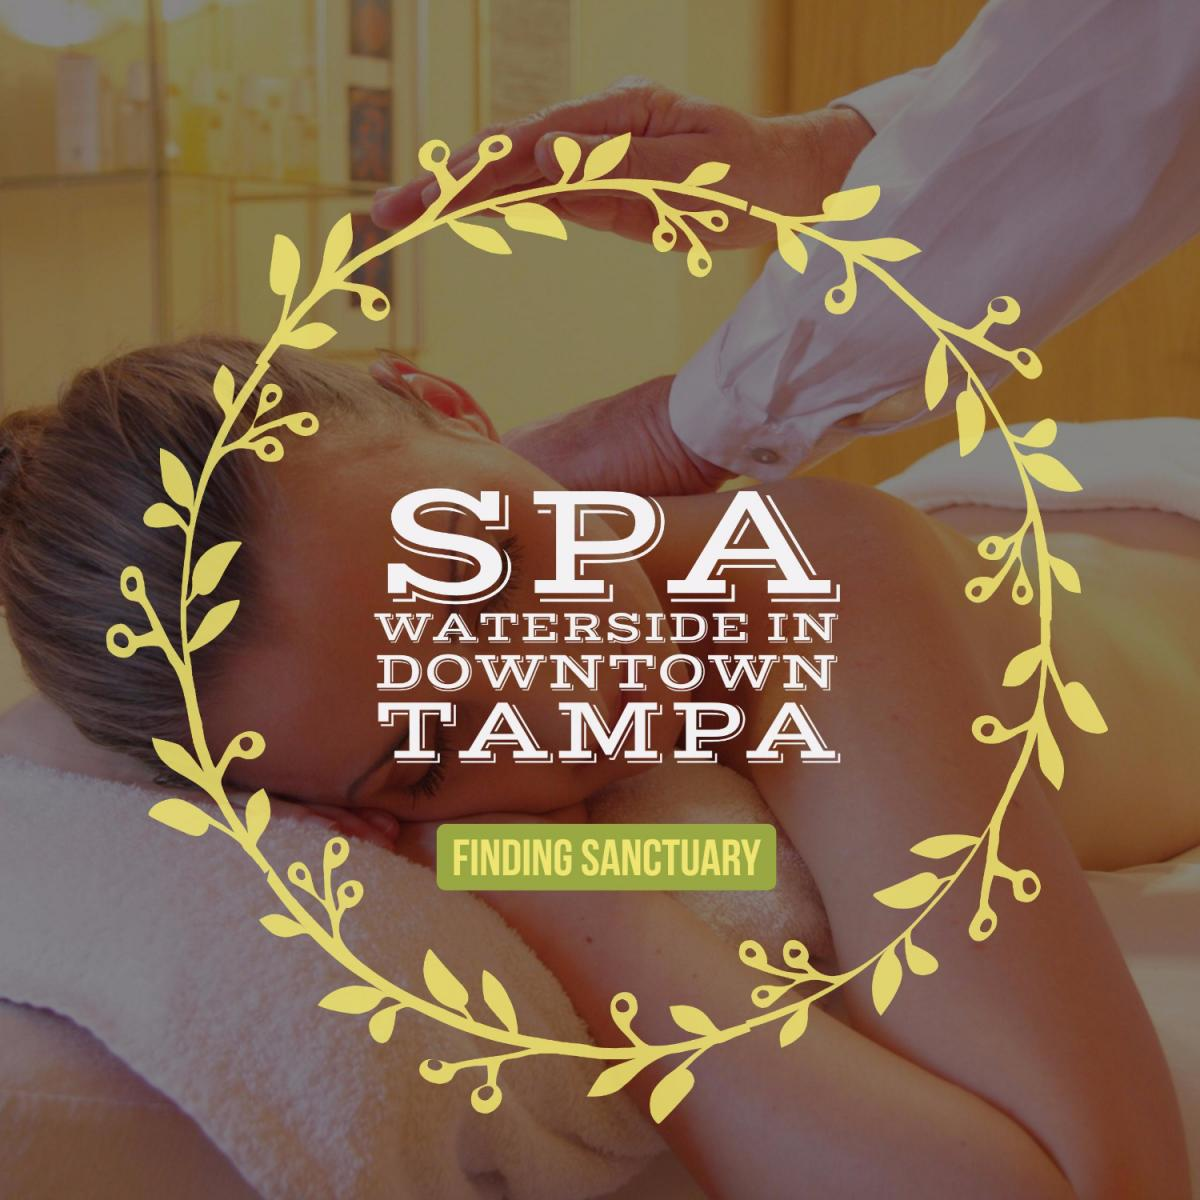 Finding Sanctuary at the Waterside Spa in Downtown Tampa